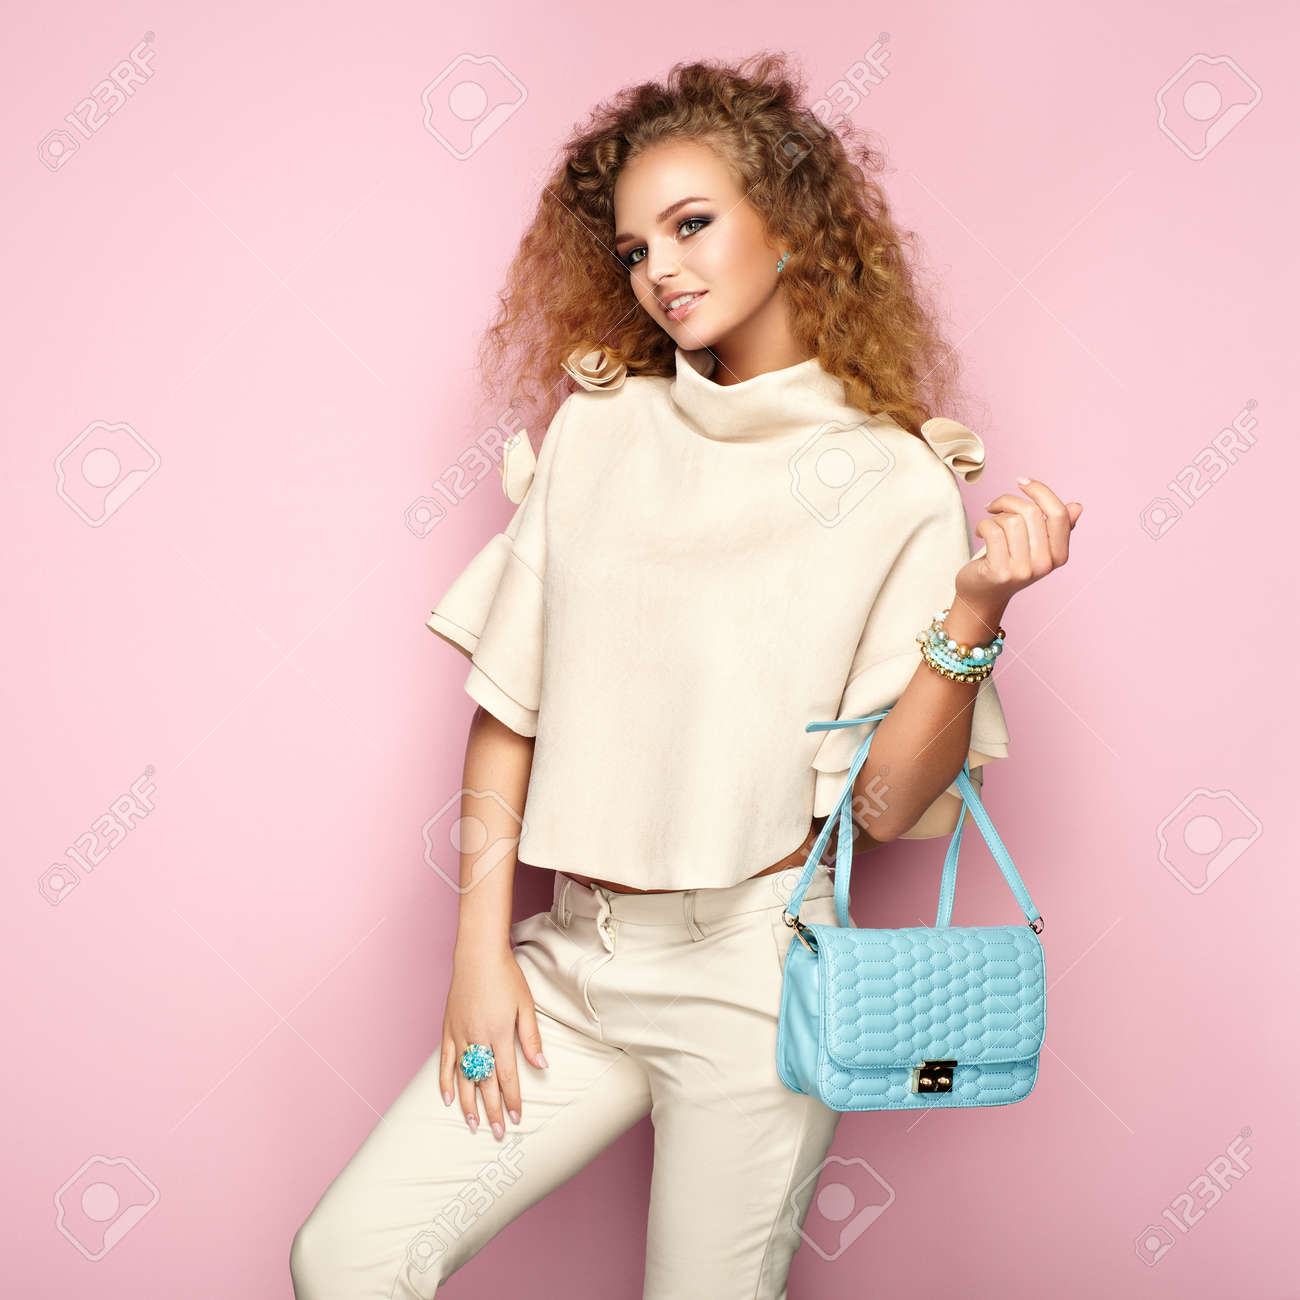 Fashion portrait of woman in summer outfit. Girl posing on pink background. Blue handbag. Stylish curly hairstyle. Glamour lady - 82310064